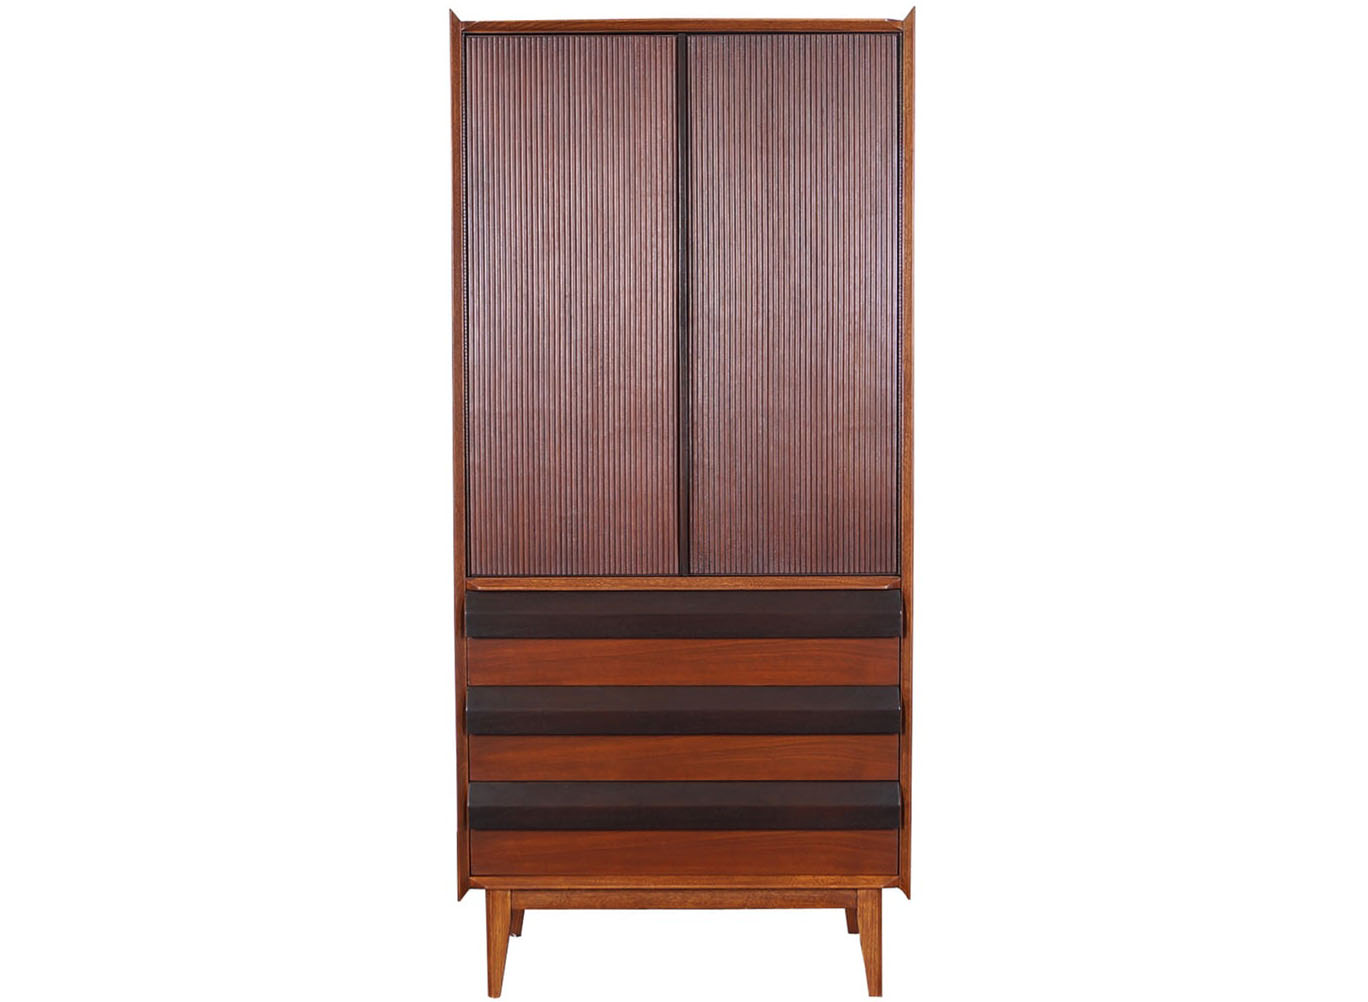 Vintage Gentleman's Cabinet by Lane